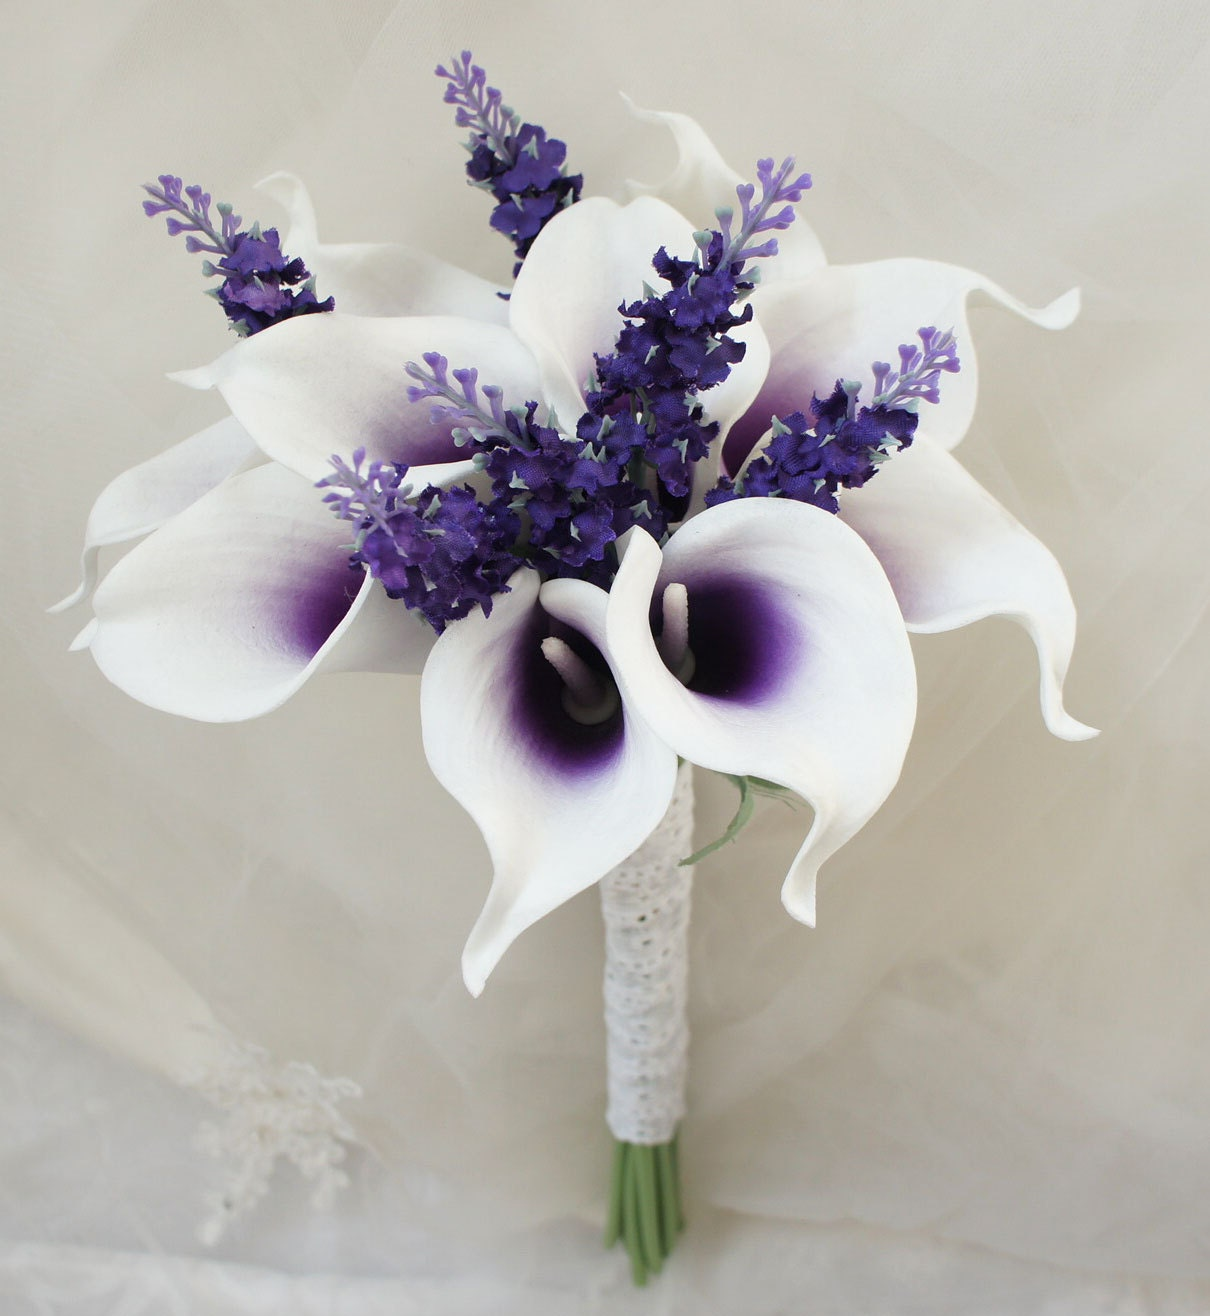 Lily Flower Wedding Bouquet: Arrangement Latex PU Calla Lily Real Touch 10 Stems Bouquet